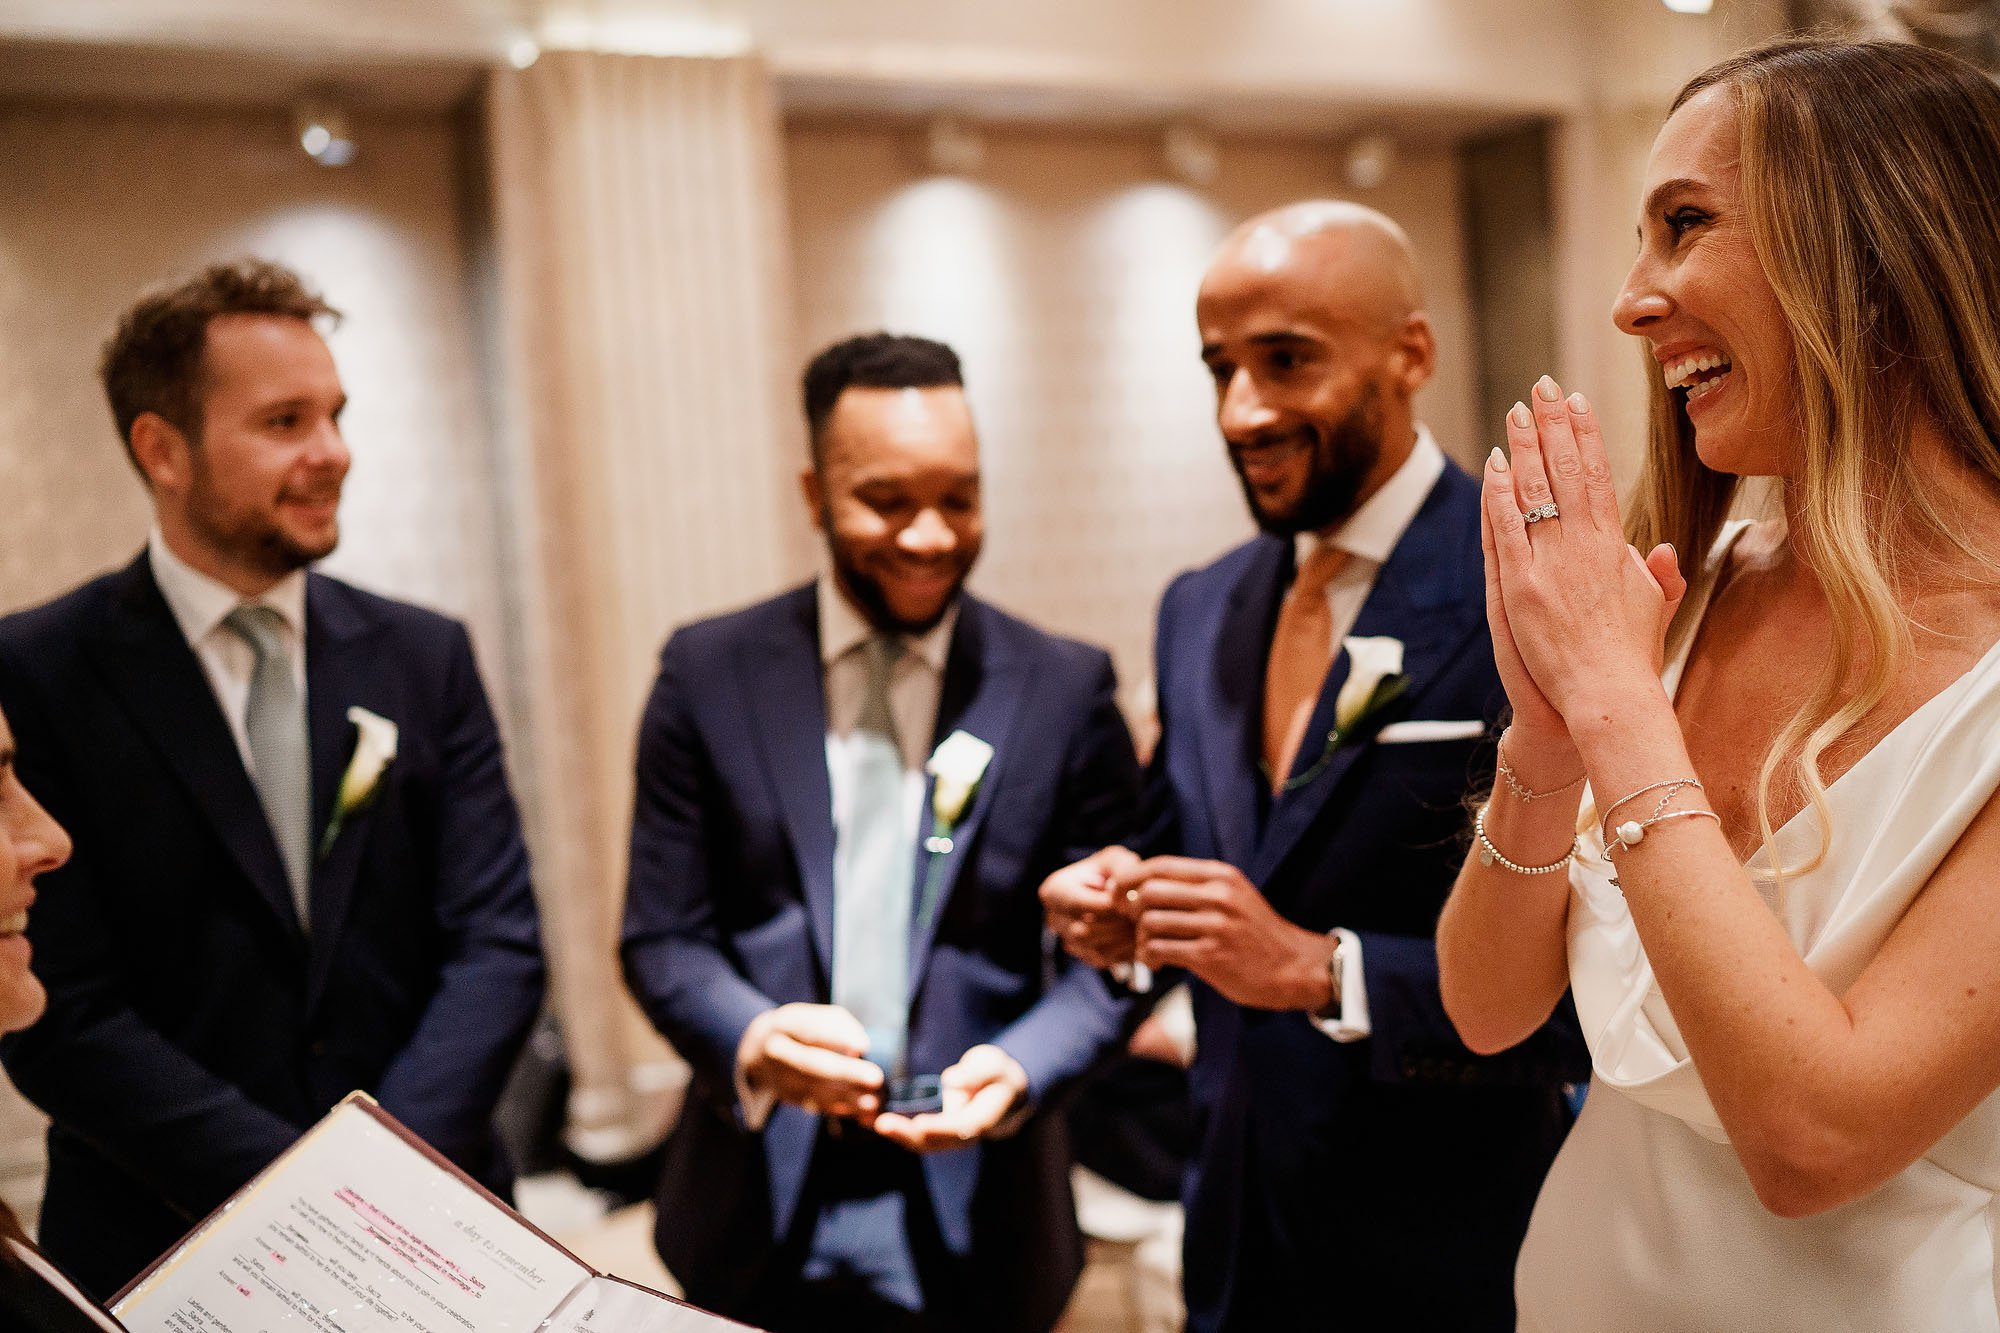 Connaught Hotel London weddings - ARJ Photography®